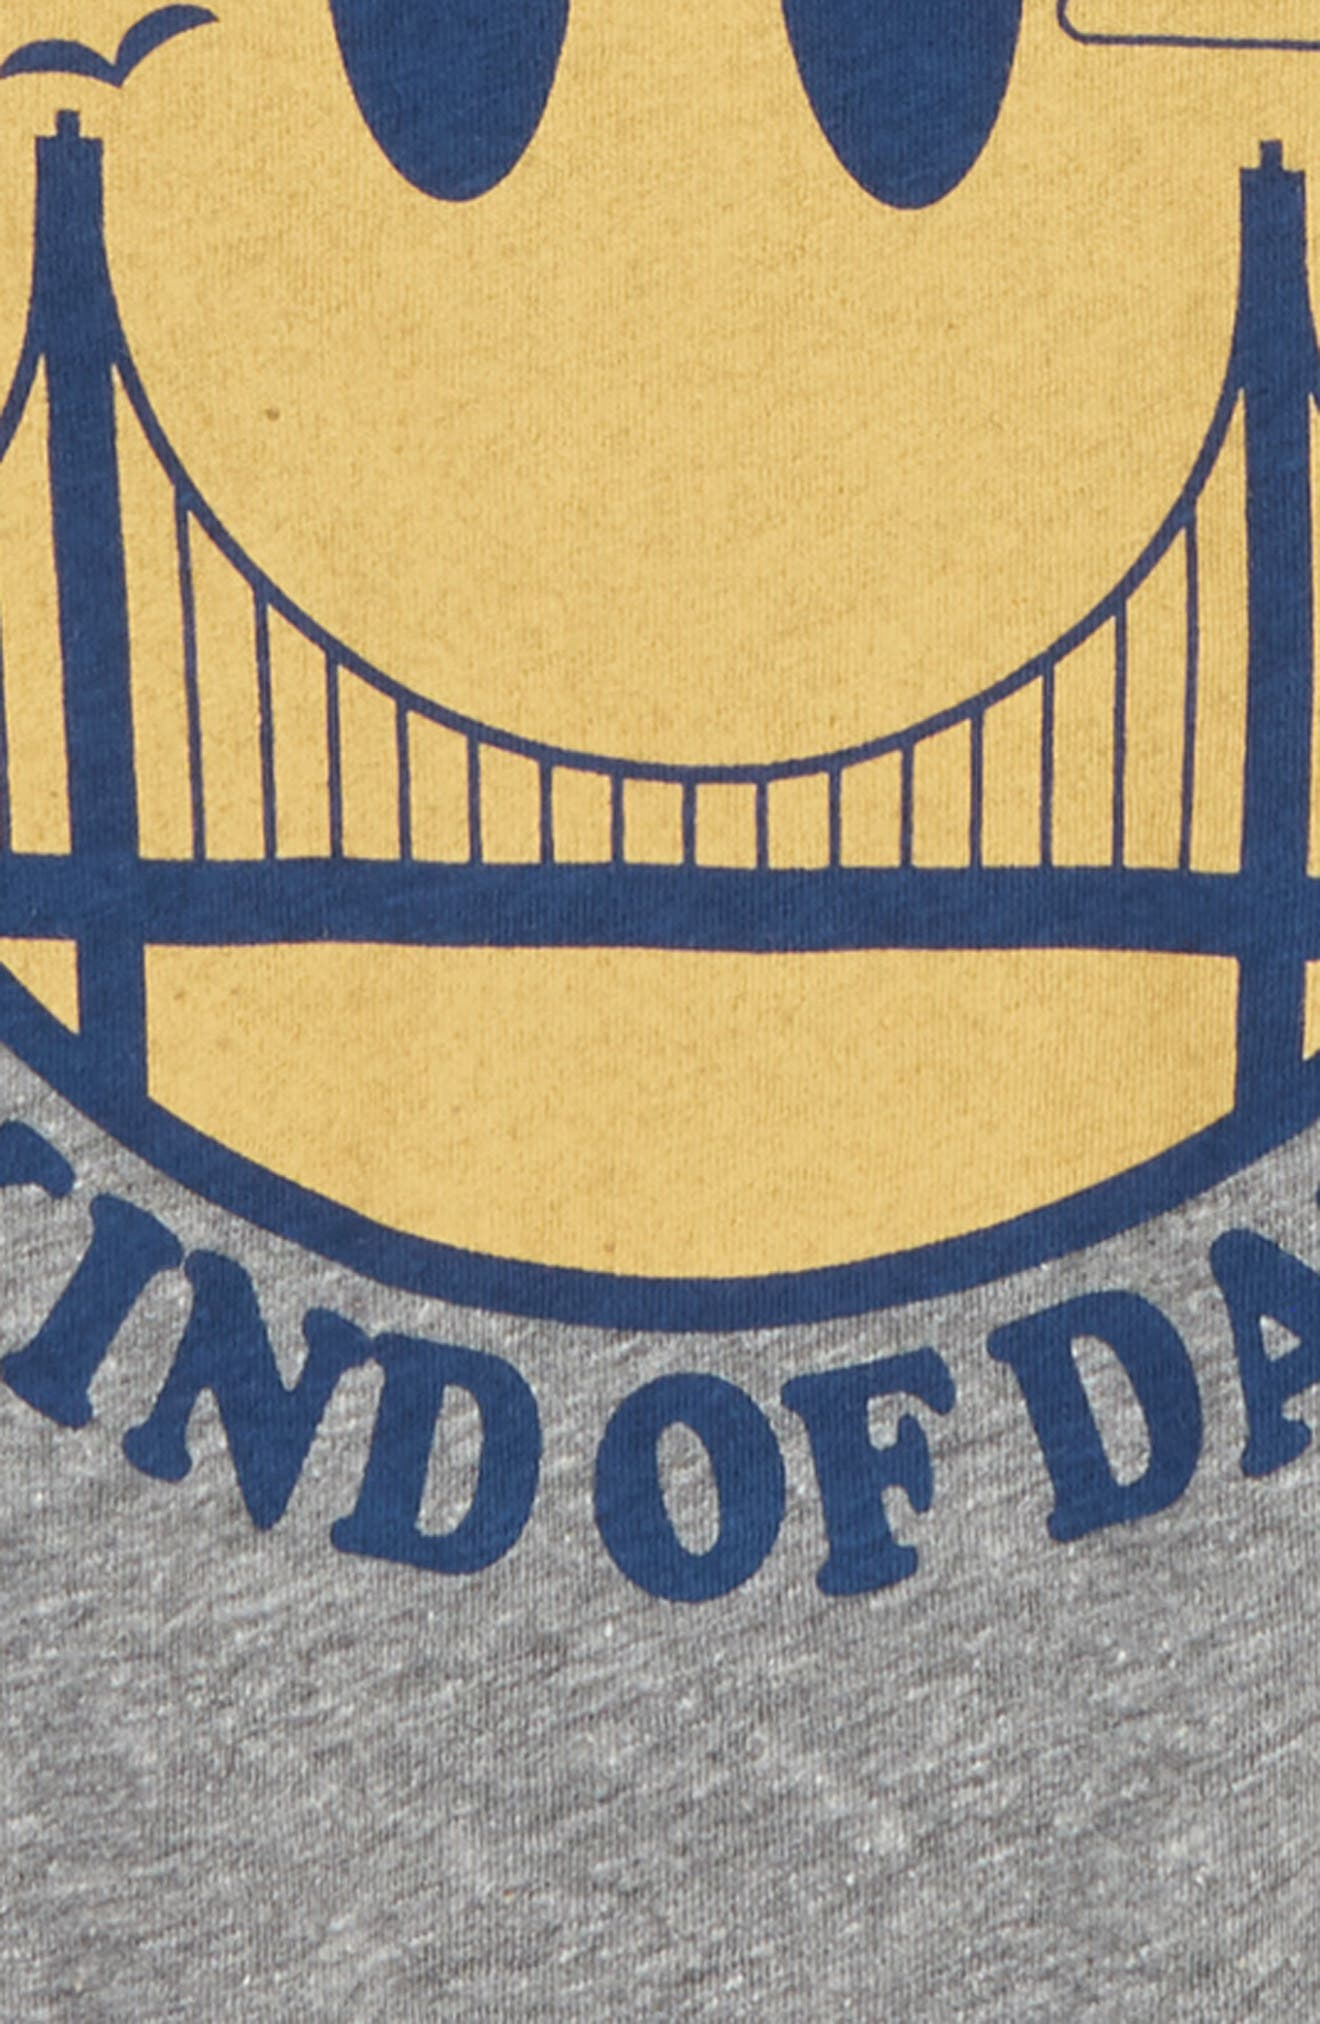 Have a San Francisco Day Graphic T-Shirt,                             Alternate thumbnail 2, color,                             020